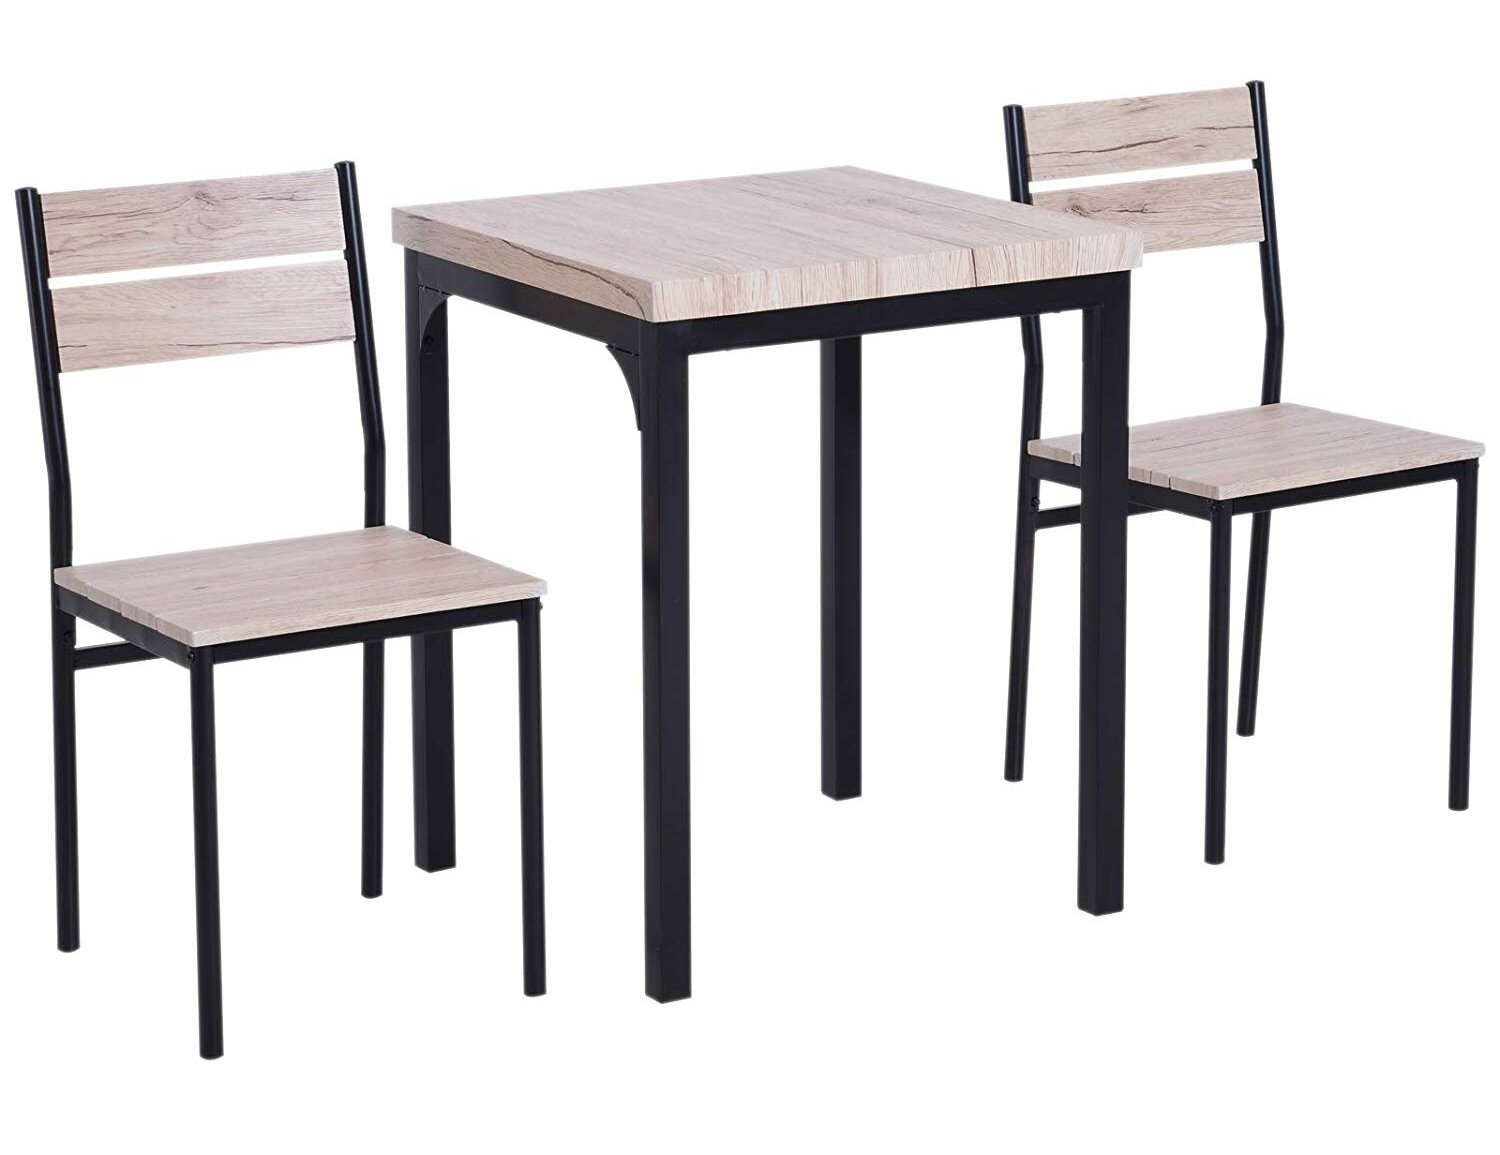 Well Liked Gracie Oaks Staley Rustic Country 3 Piece Dining Set (View 18 of 20)